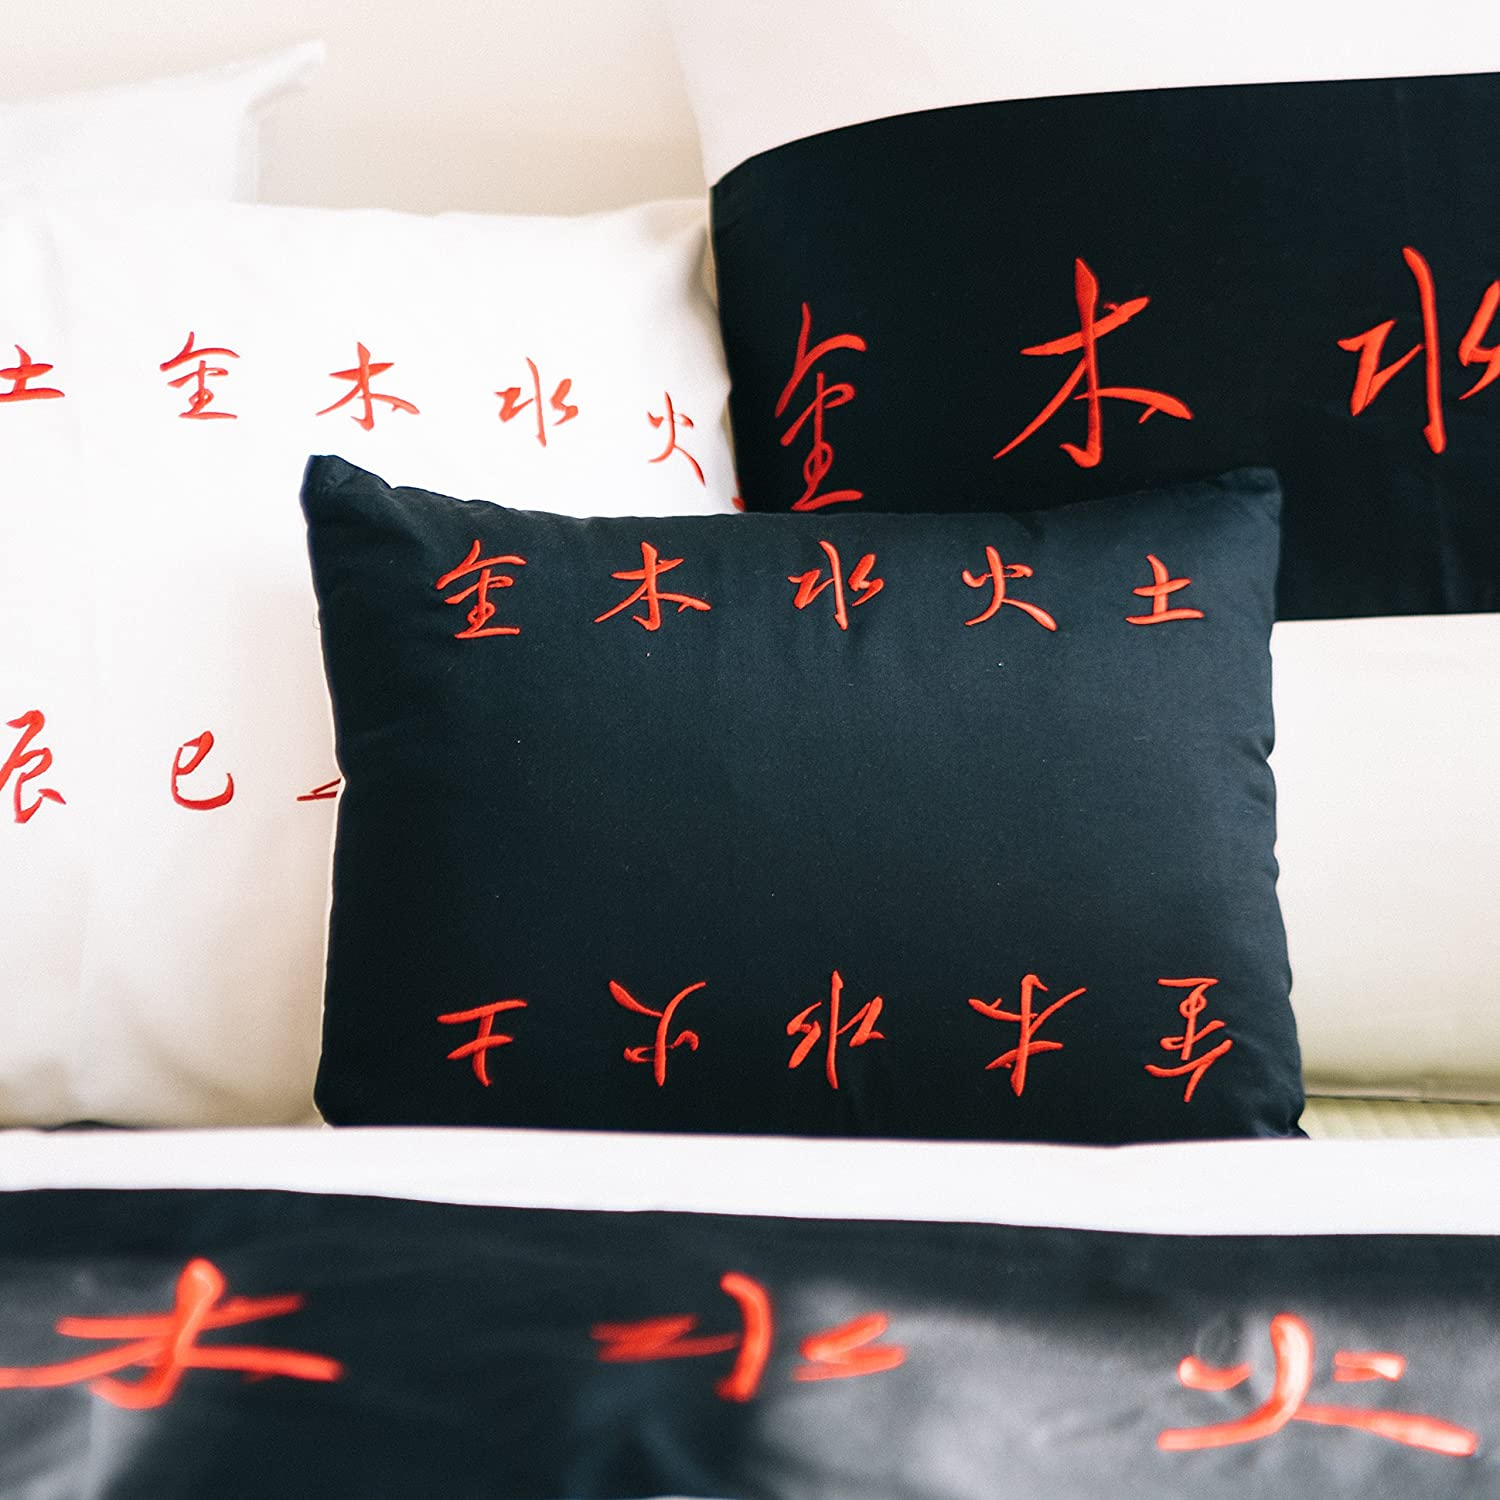 Black and red striped decorative pillow slip sham, small pillowcase 12'x16'. Asian inspired decorative contemporary fashionable, artsy design with Chinese embroidered calligraphy poem orientsense COMINHKR050323